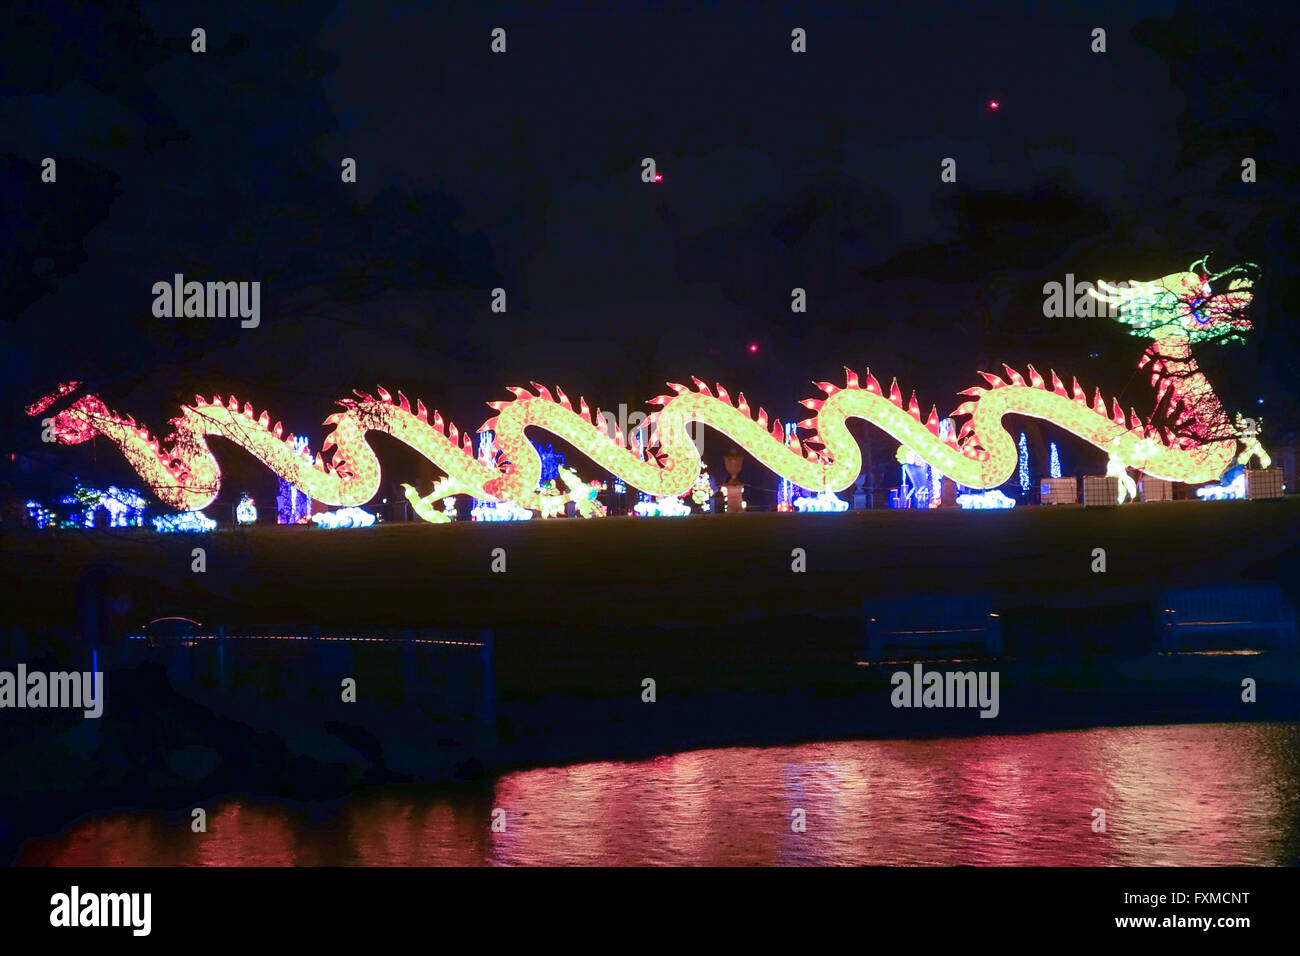 A dragon at the Magical Lantern Festival celebrates the Year of the Monkey at Chiswick Park in London. - Stock Image